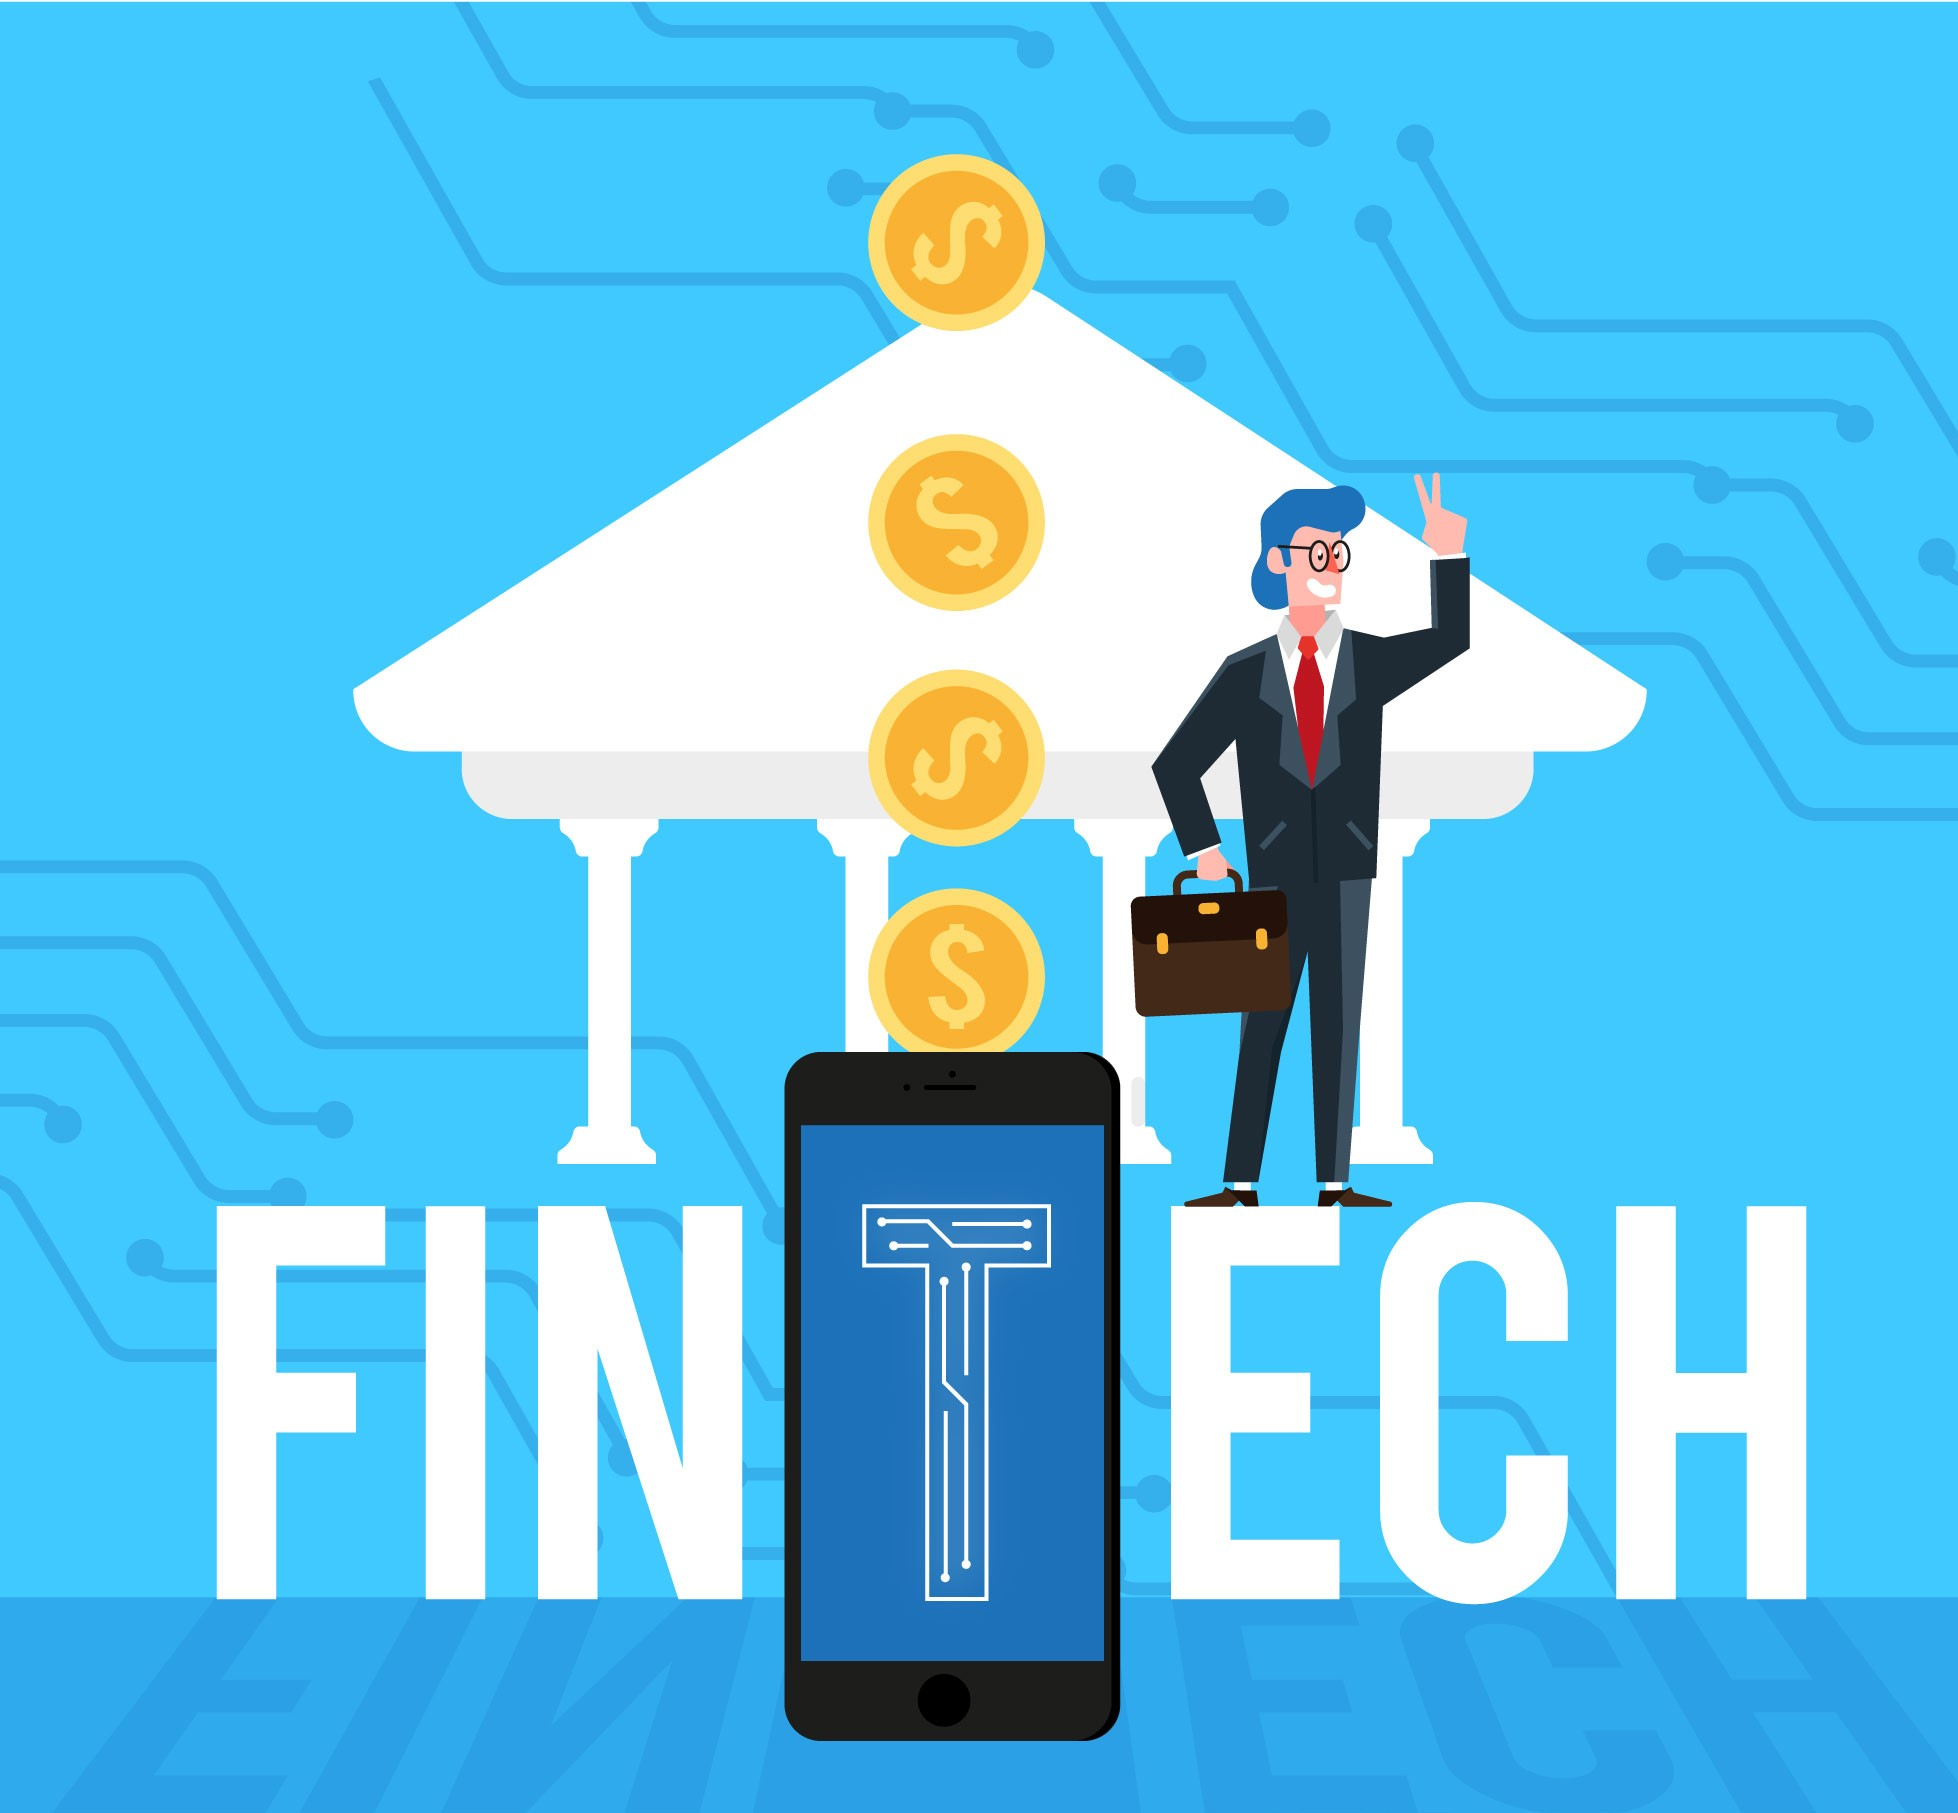 a business man standing in front of letters FINTECH